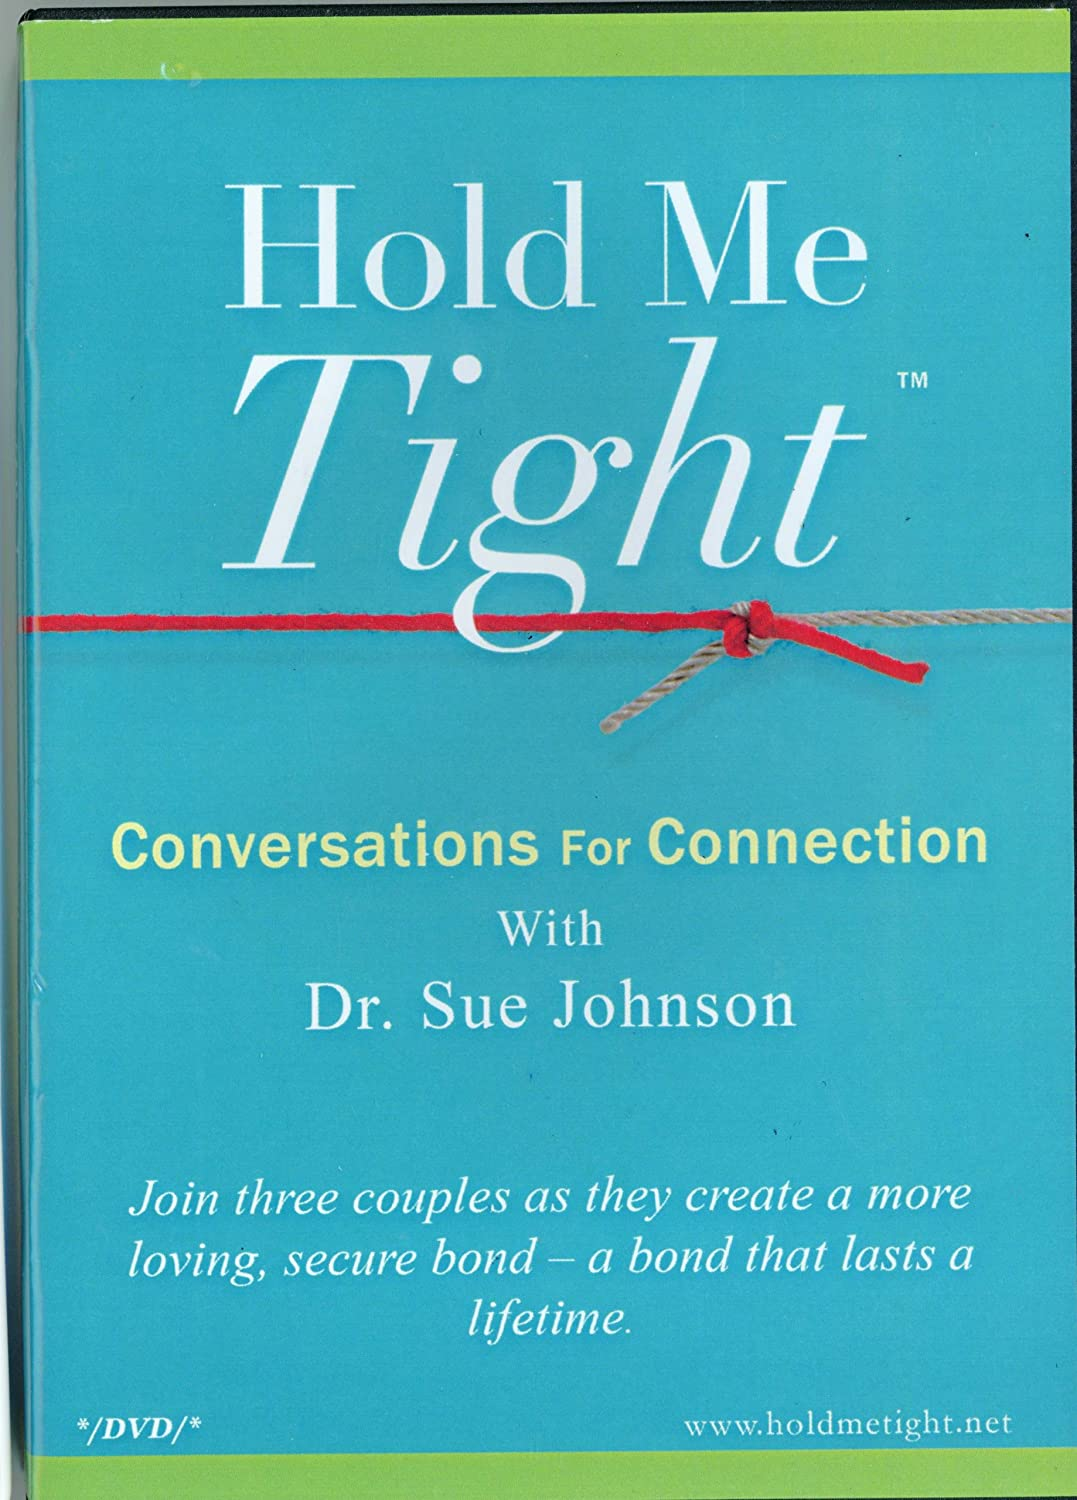 Amazon.com: Hold Me Tight: Conversations for Connections with Dr ...